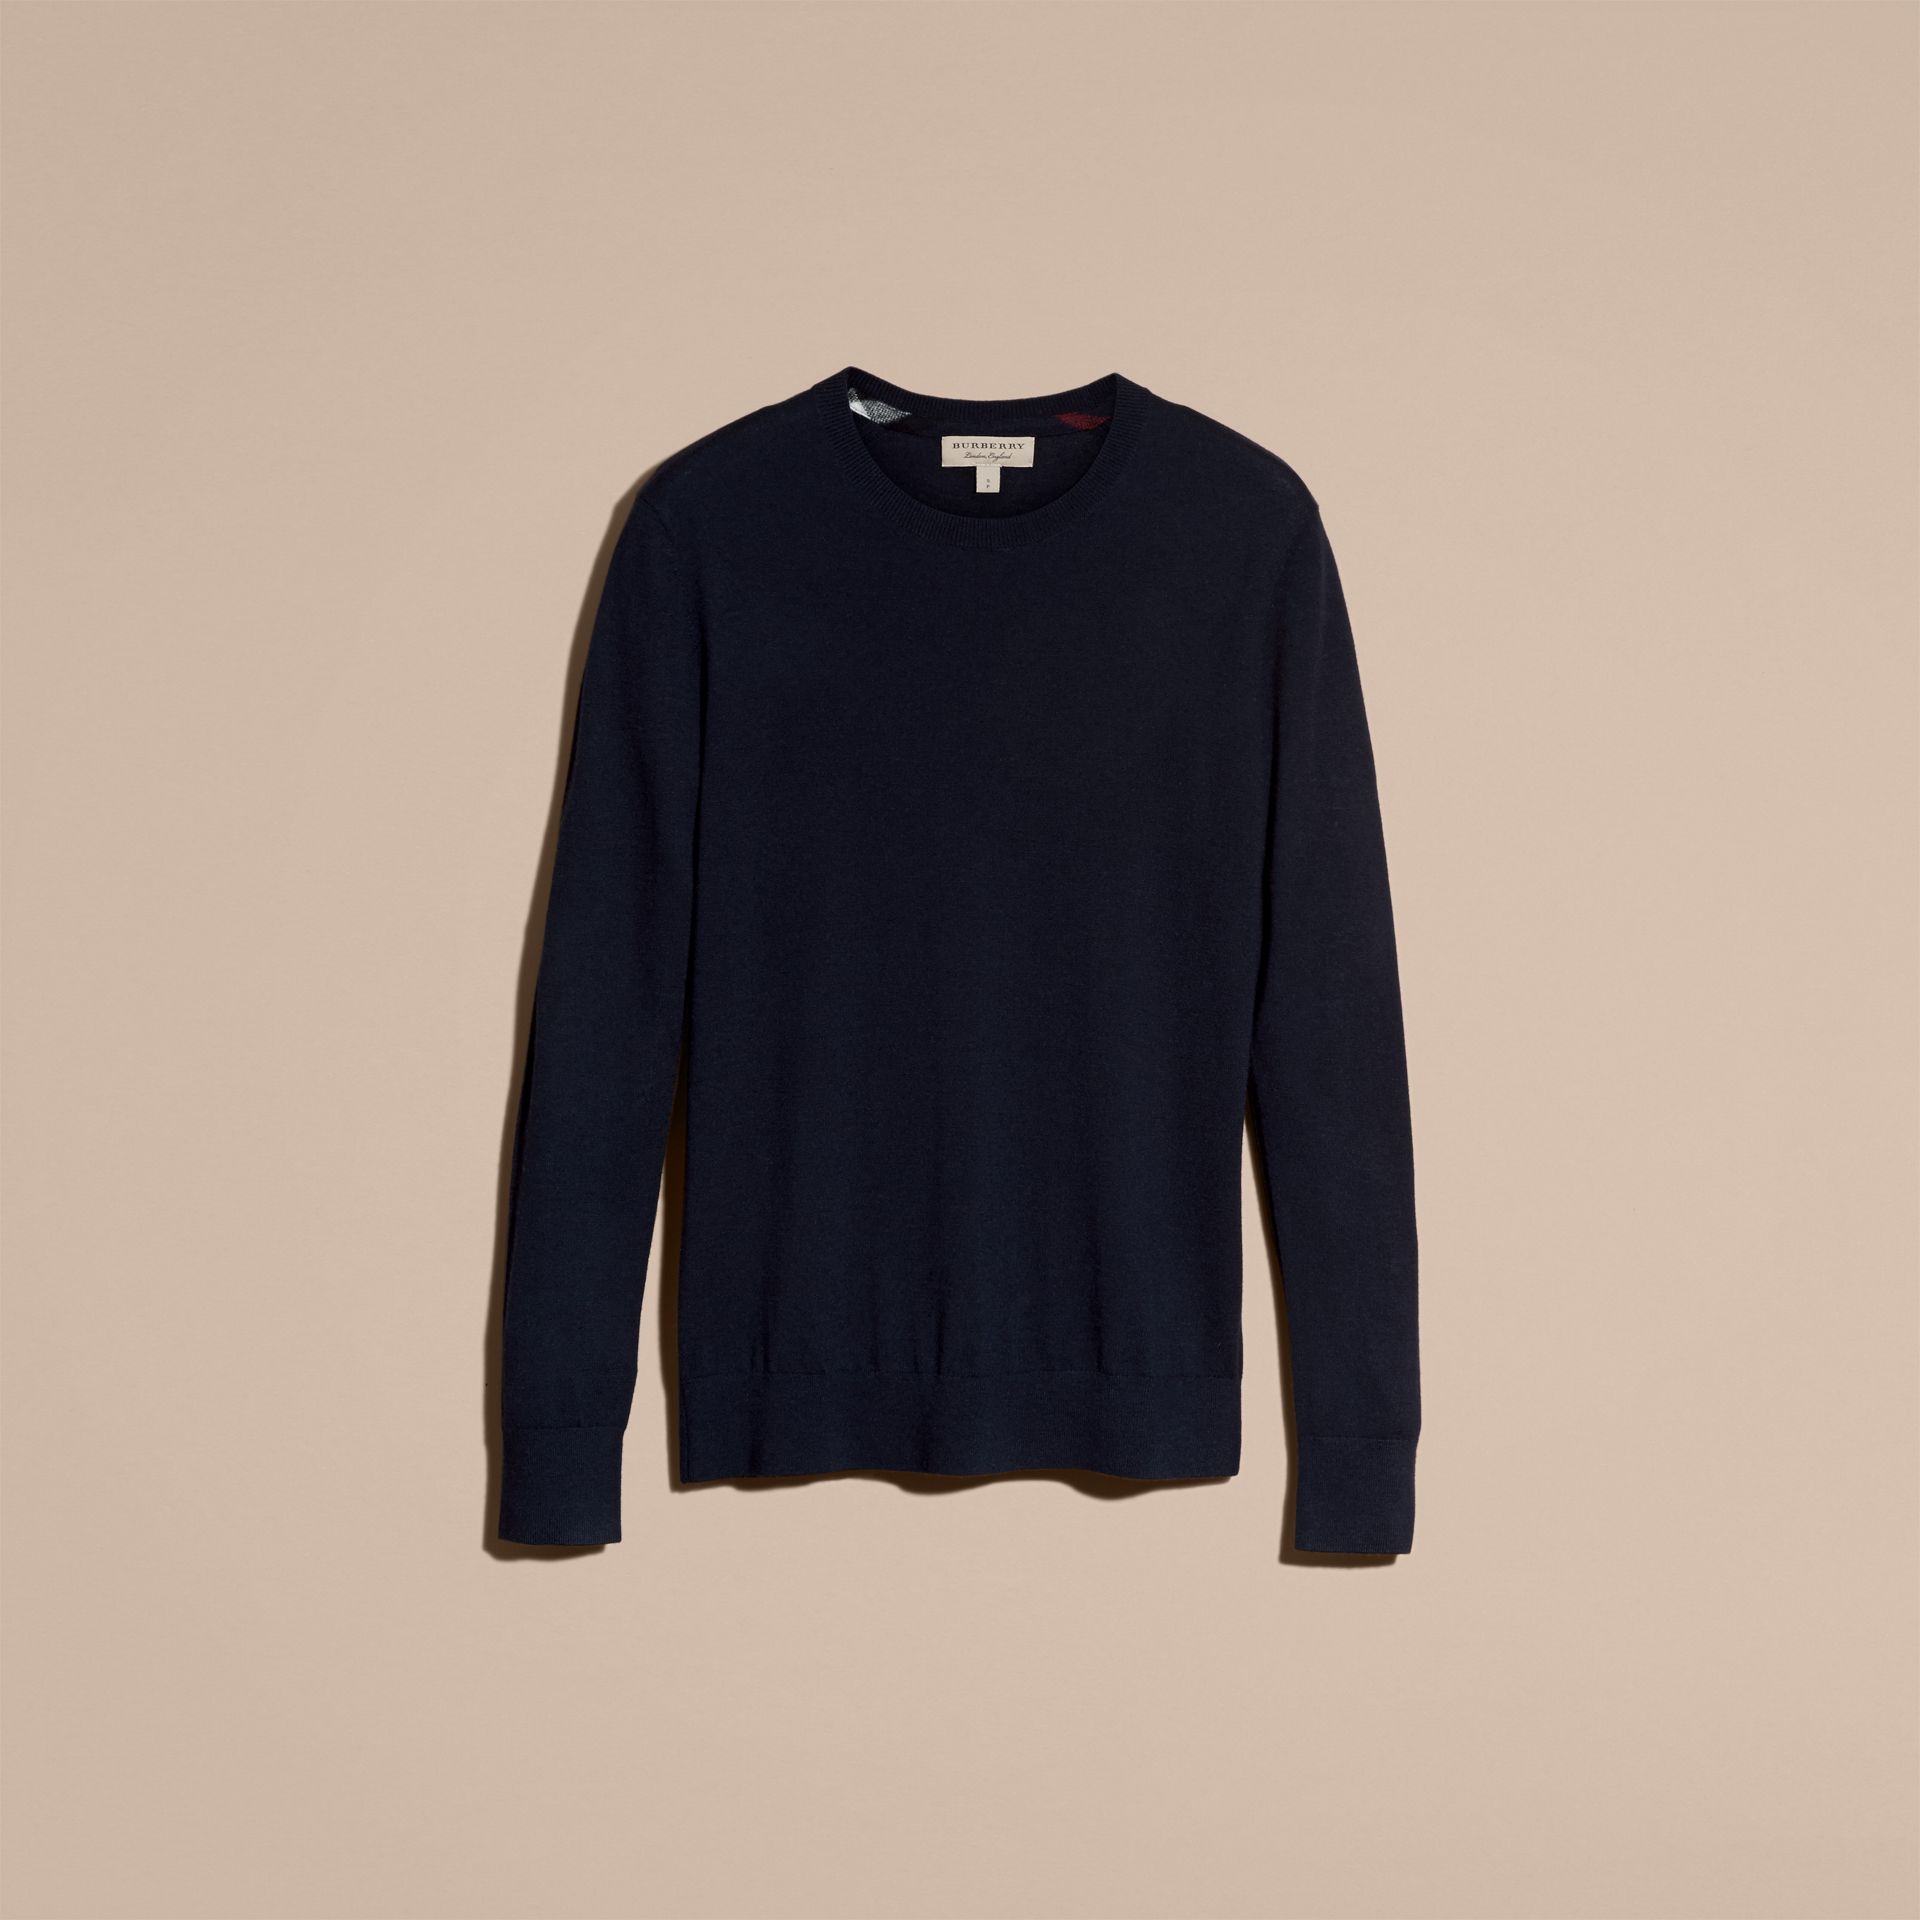 Check Jacquard Detail Cashmere Sweater in Navy - Men | Burberry - gallery image 4